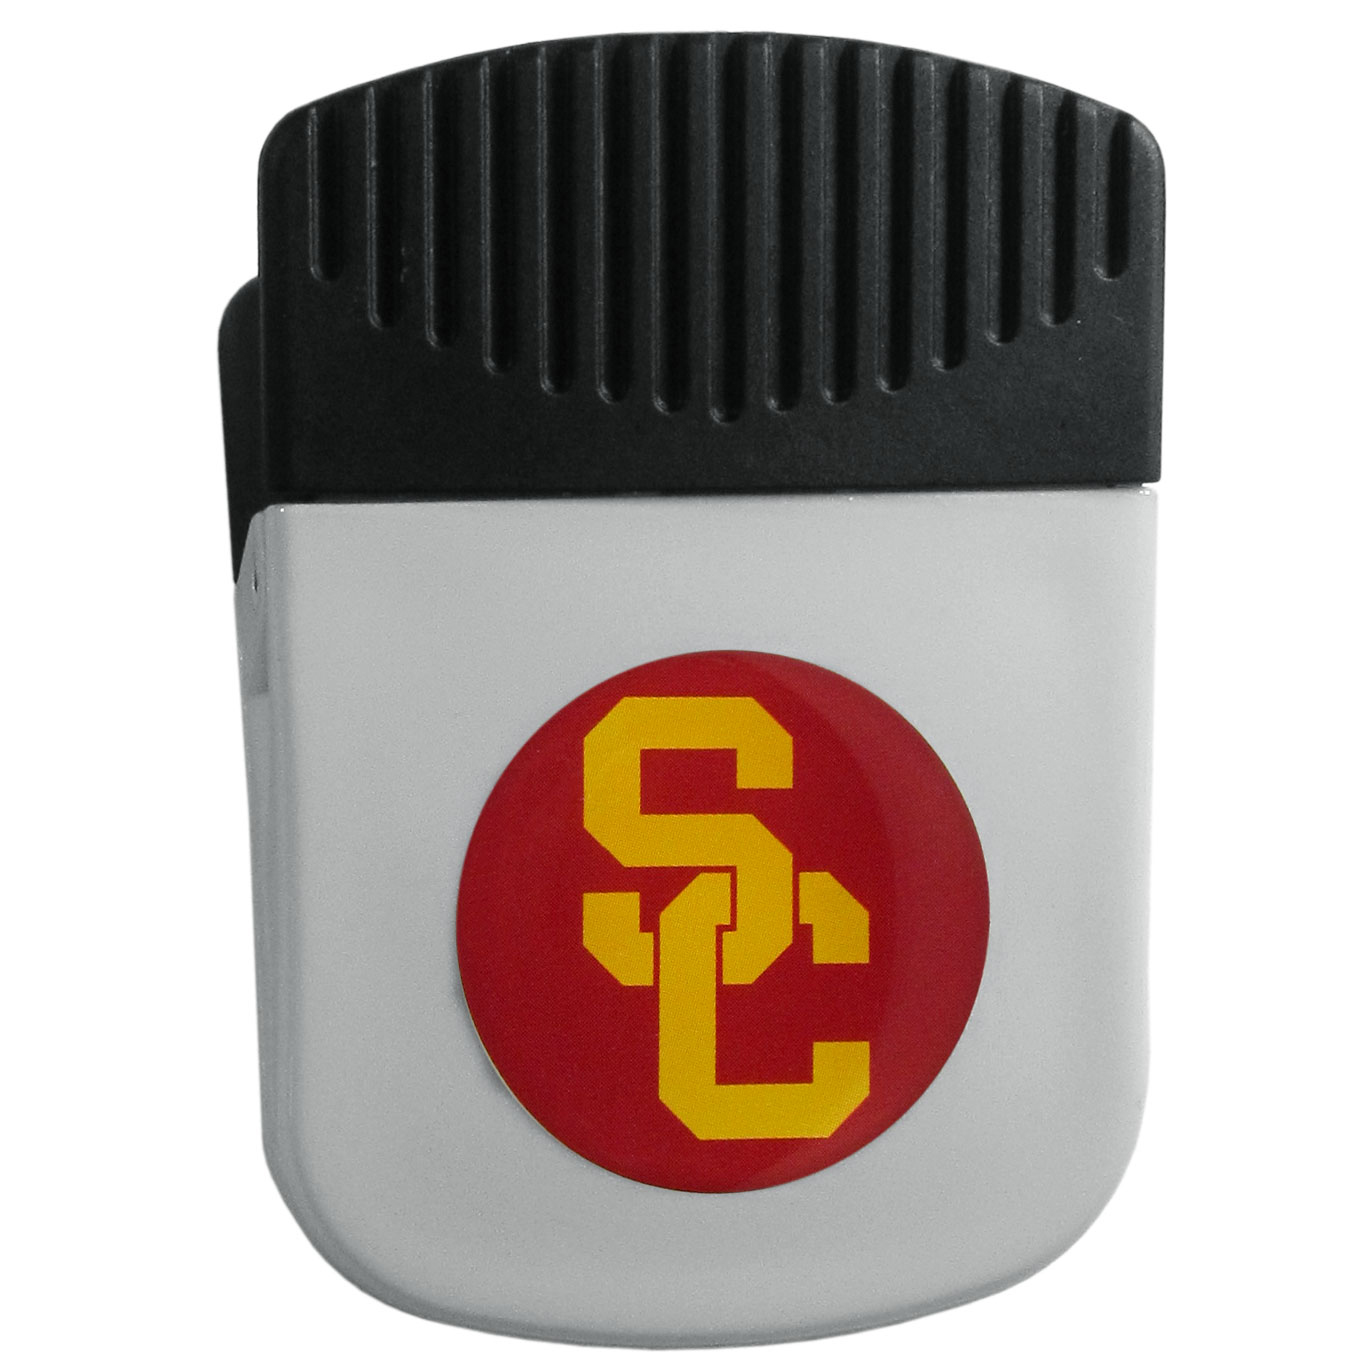 USC Trojans Chip Clip Magnet - Use this attractive clip magnet to hold memos, photos or appointment cards on the fridge or take it down keep use it to clip bags shut. The magnet features a domed USC Trojans logo.